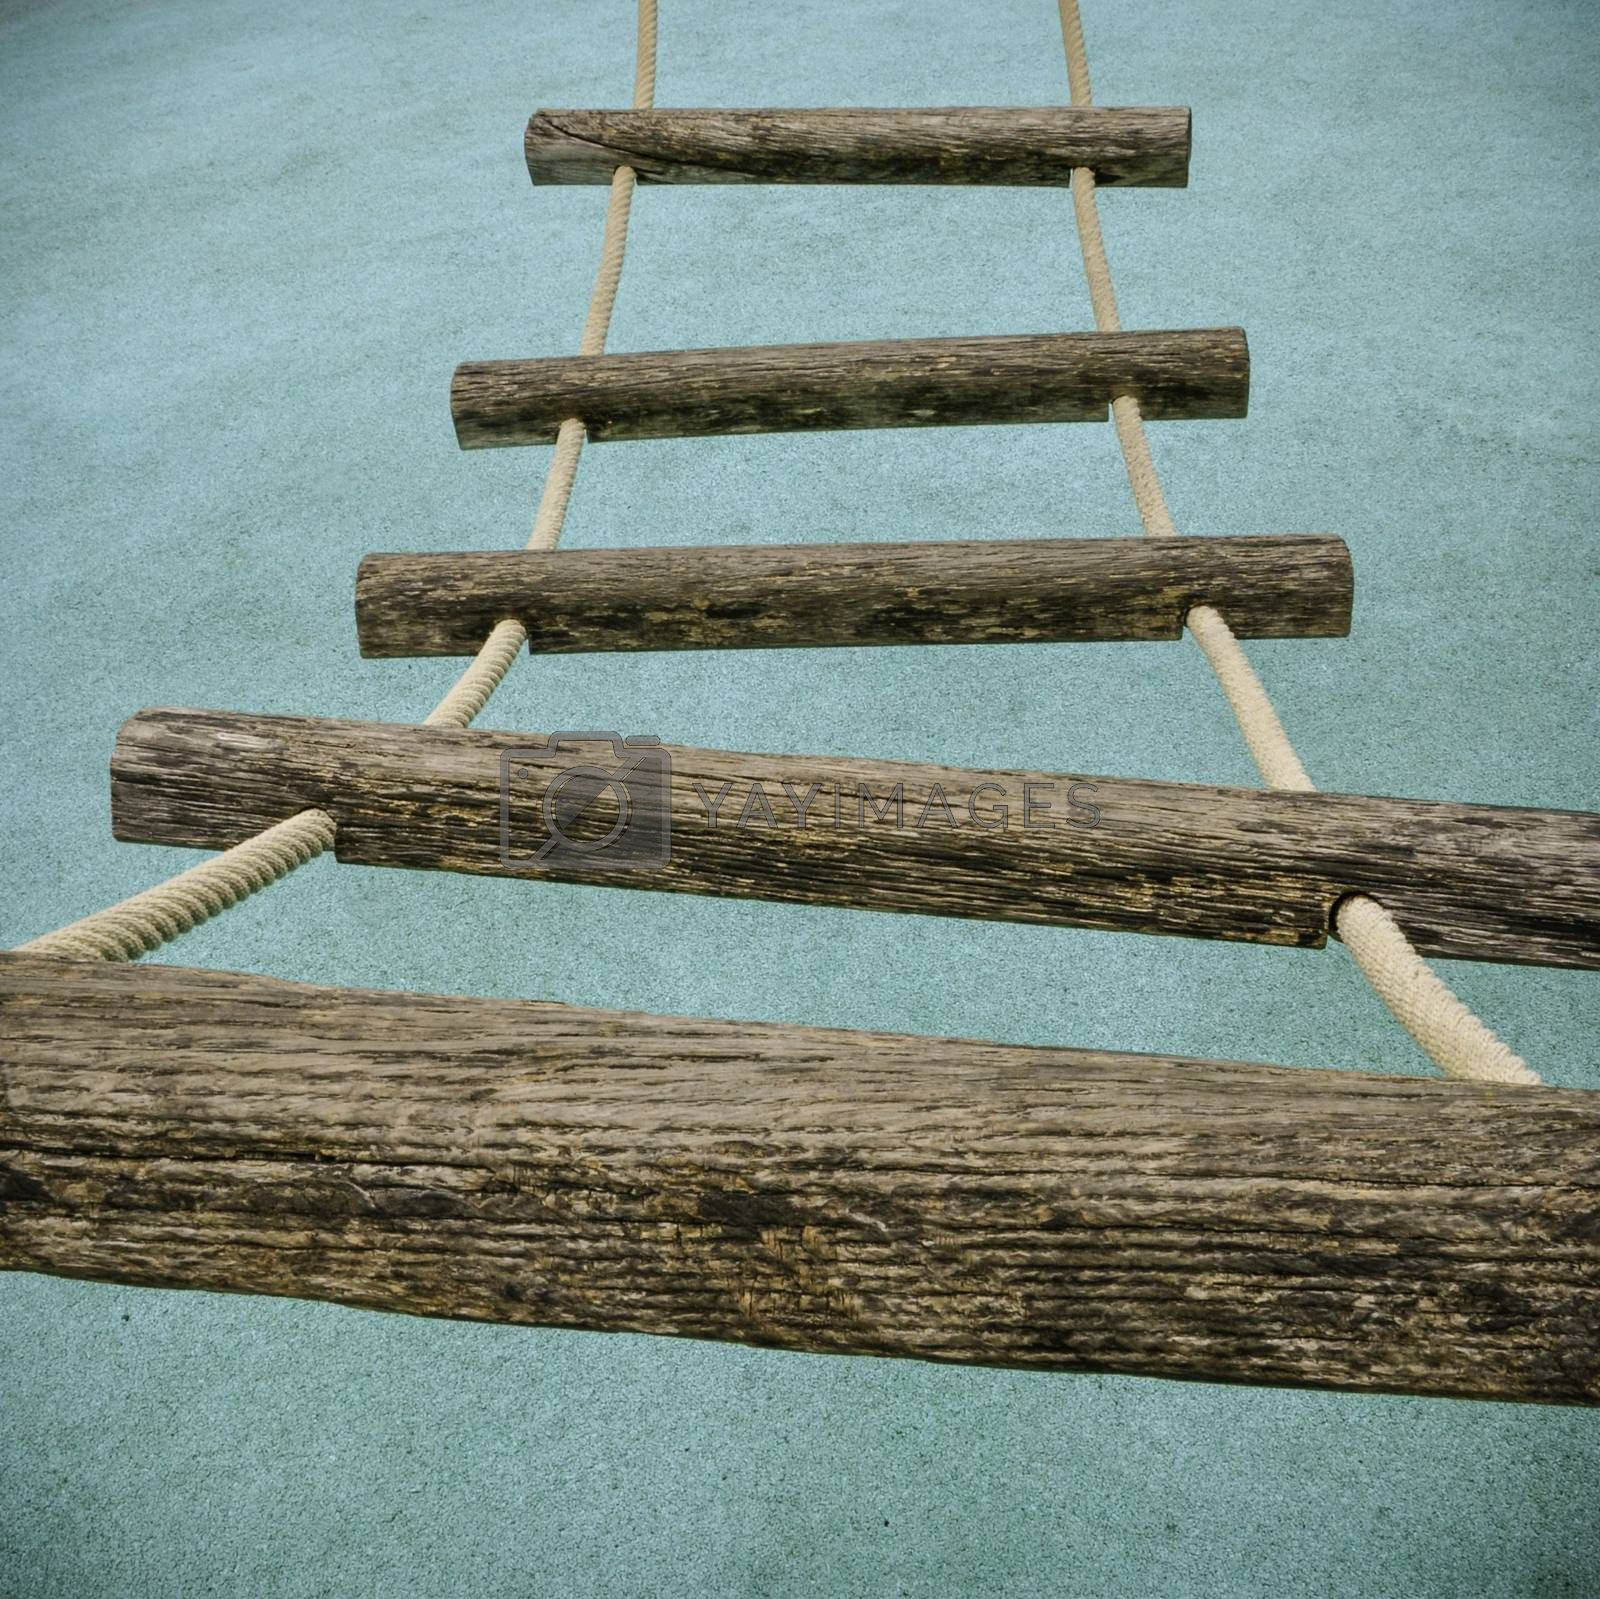 A perspective view of a rope ladder with wooden rungs on a children's climbing frame.